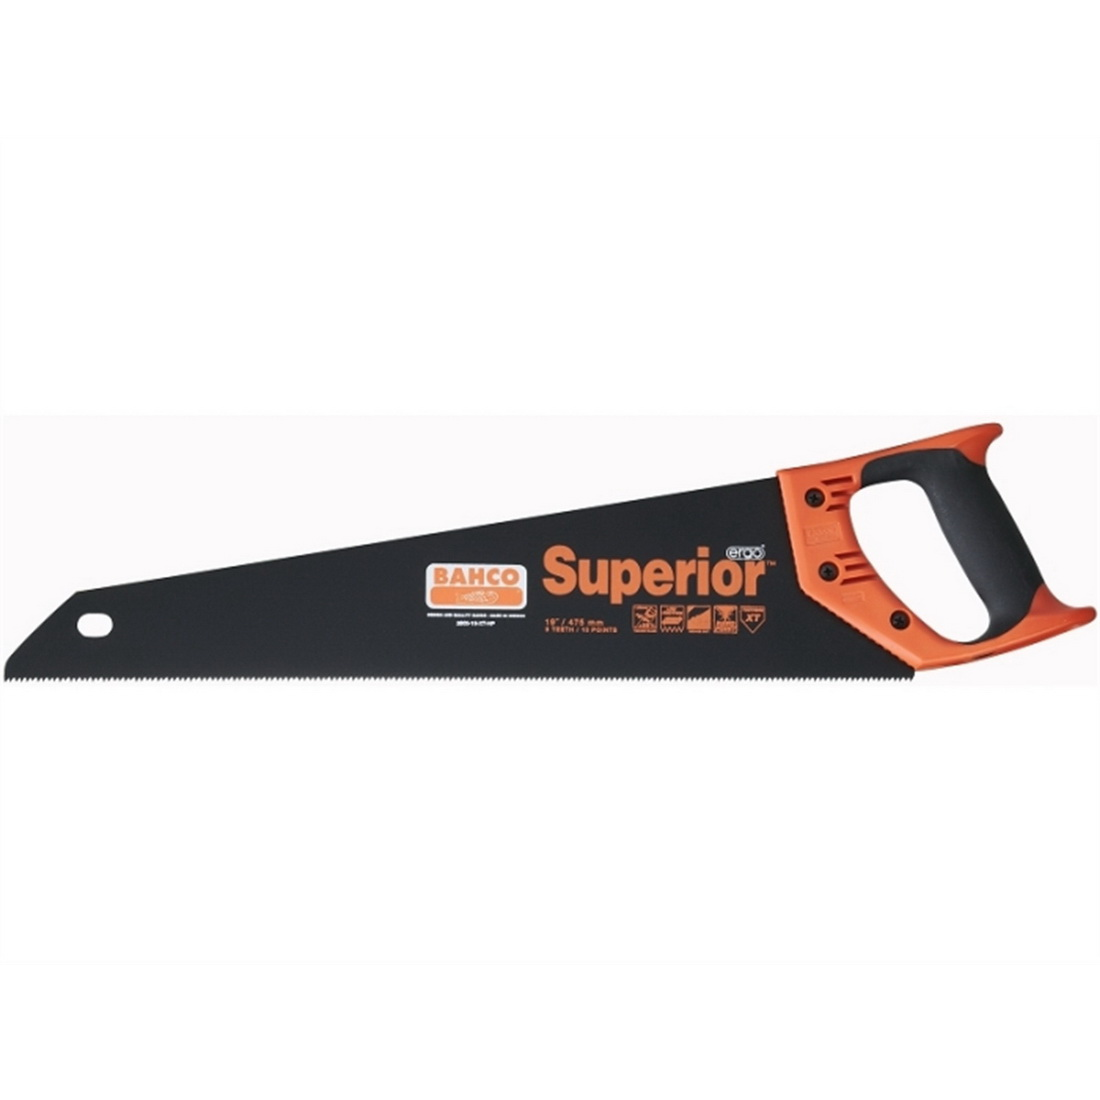 Superior 550mm 9TPI New Generation Hand Saw